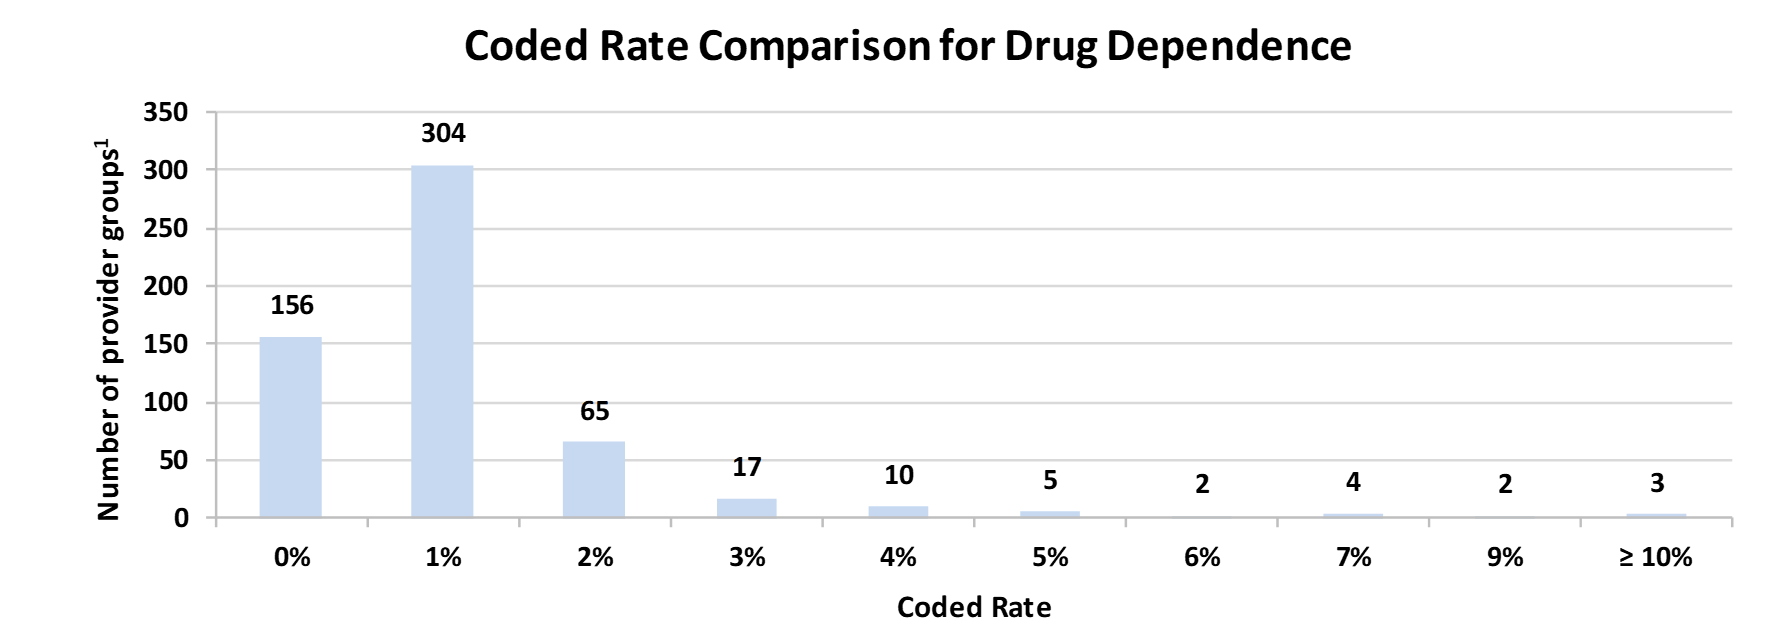 Coded Rate Comparison for Drug Dependence